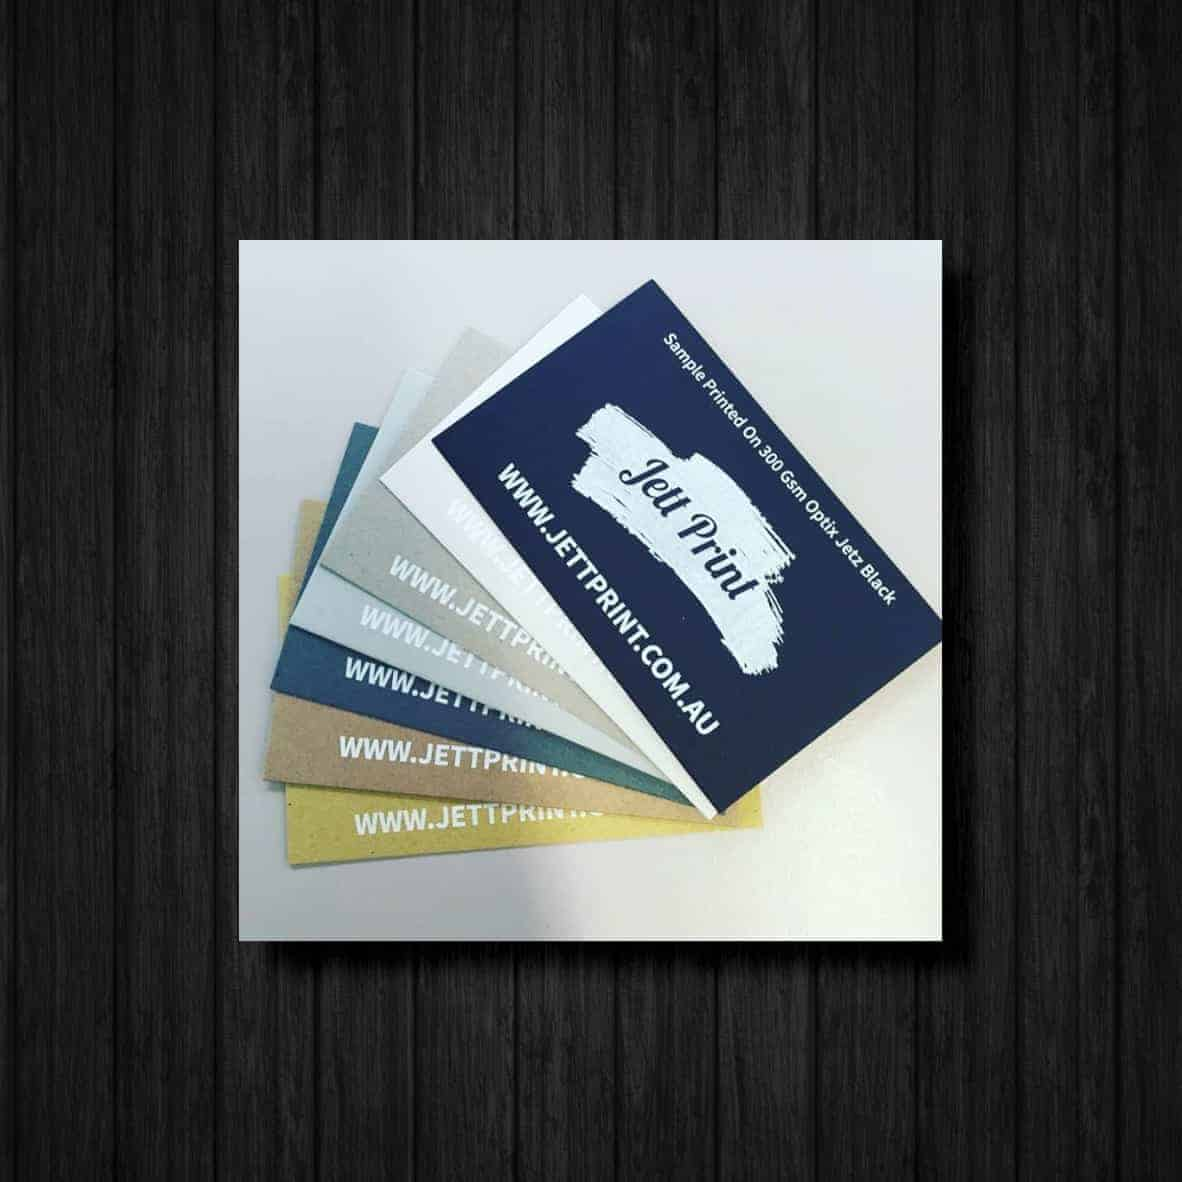 Jett Print | White Ink Printing | Business Cards | Wedding Invites